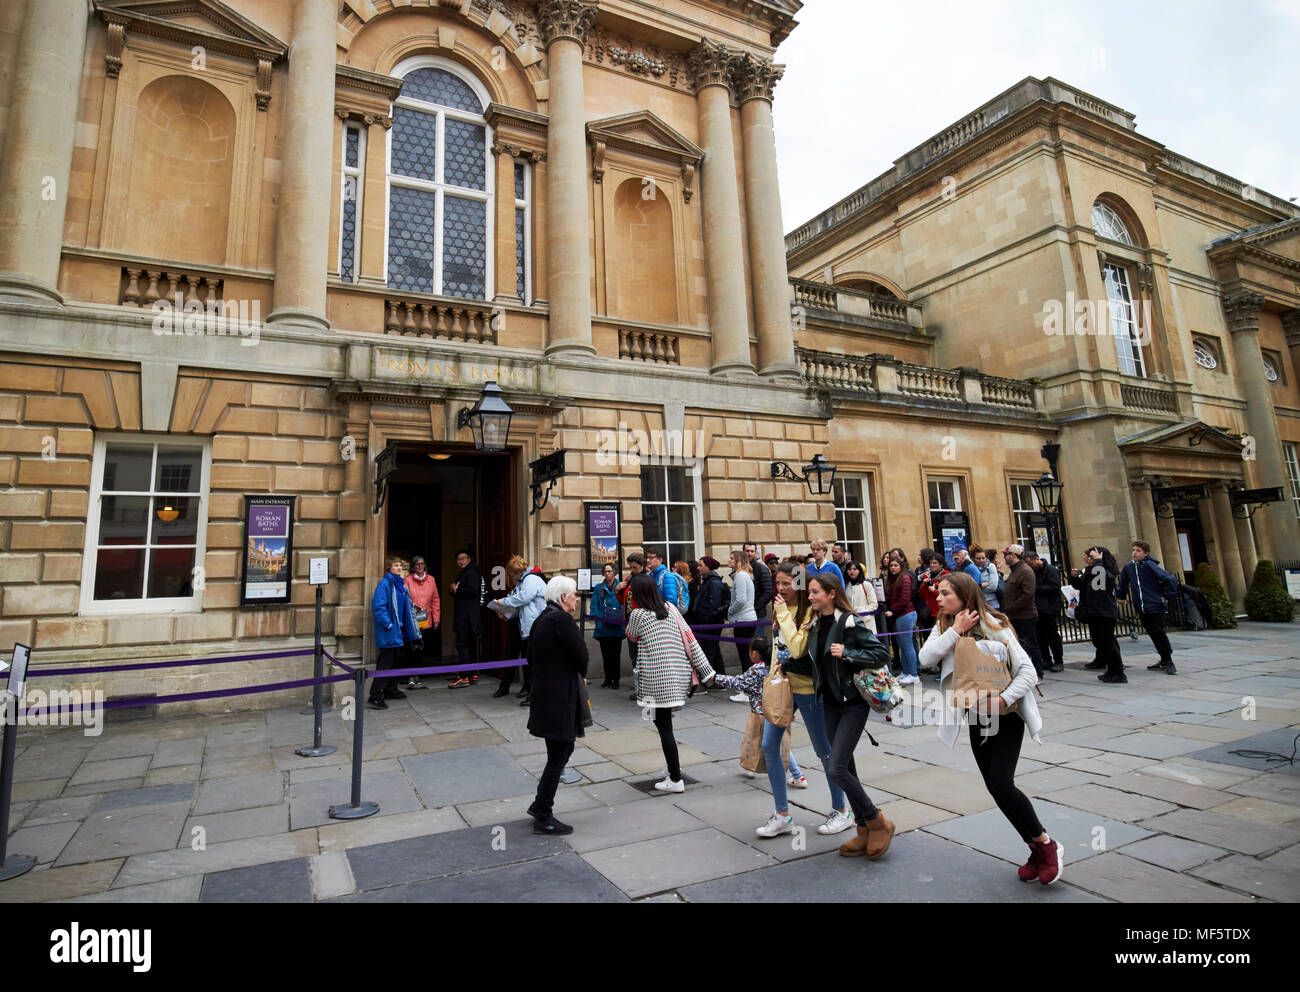 Tourists queue for entry outside the Roman Baths in the centre of historic Bath Somerset England UK - Stock Image